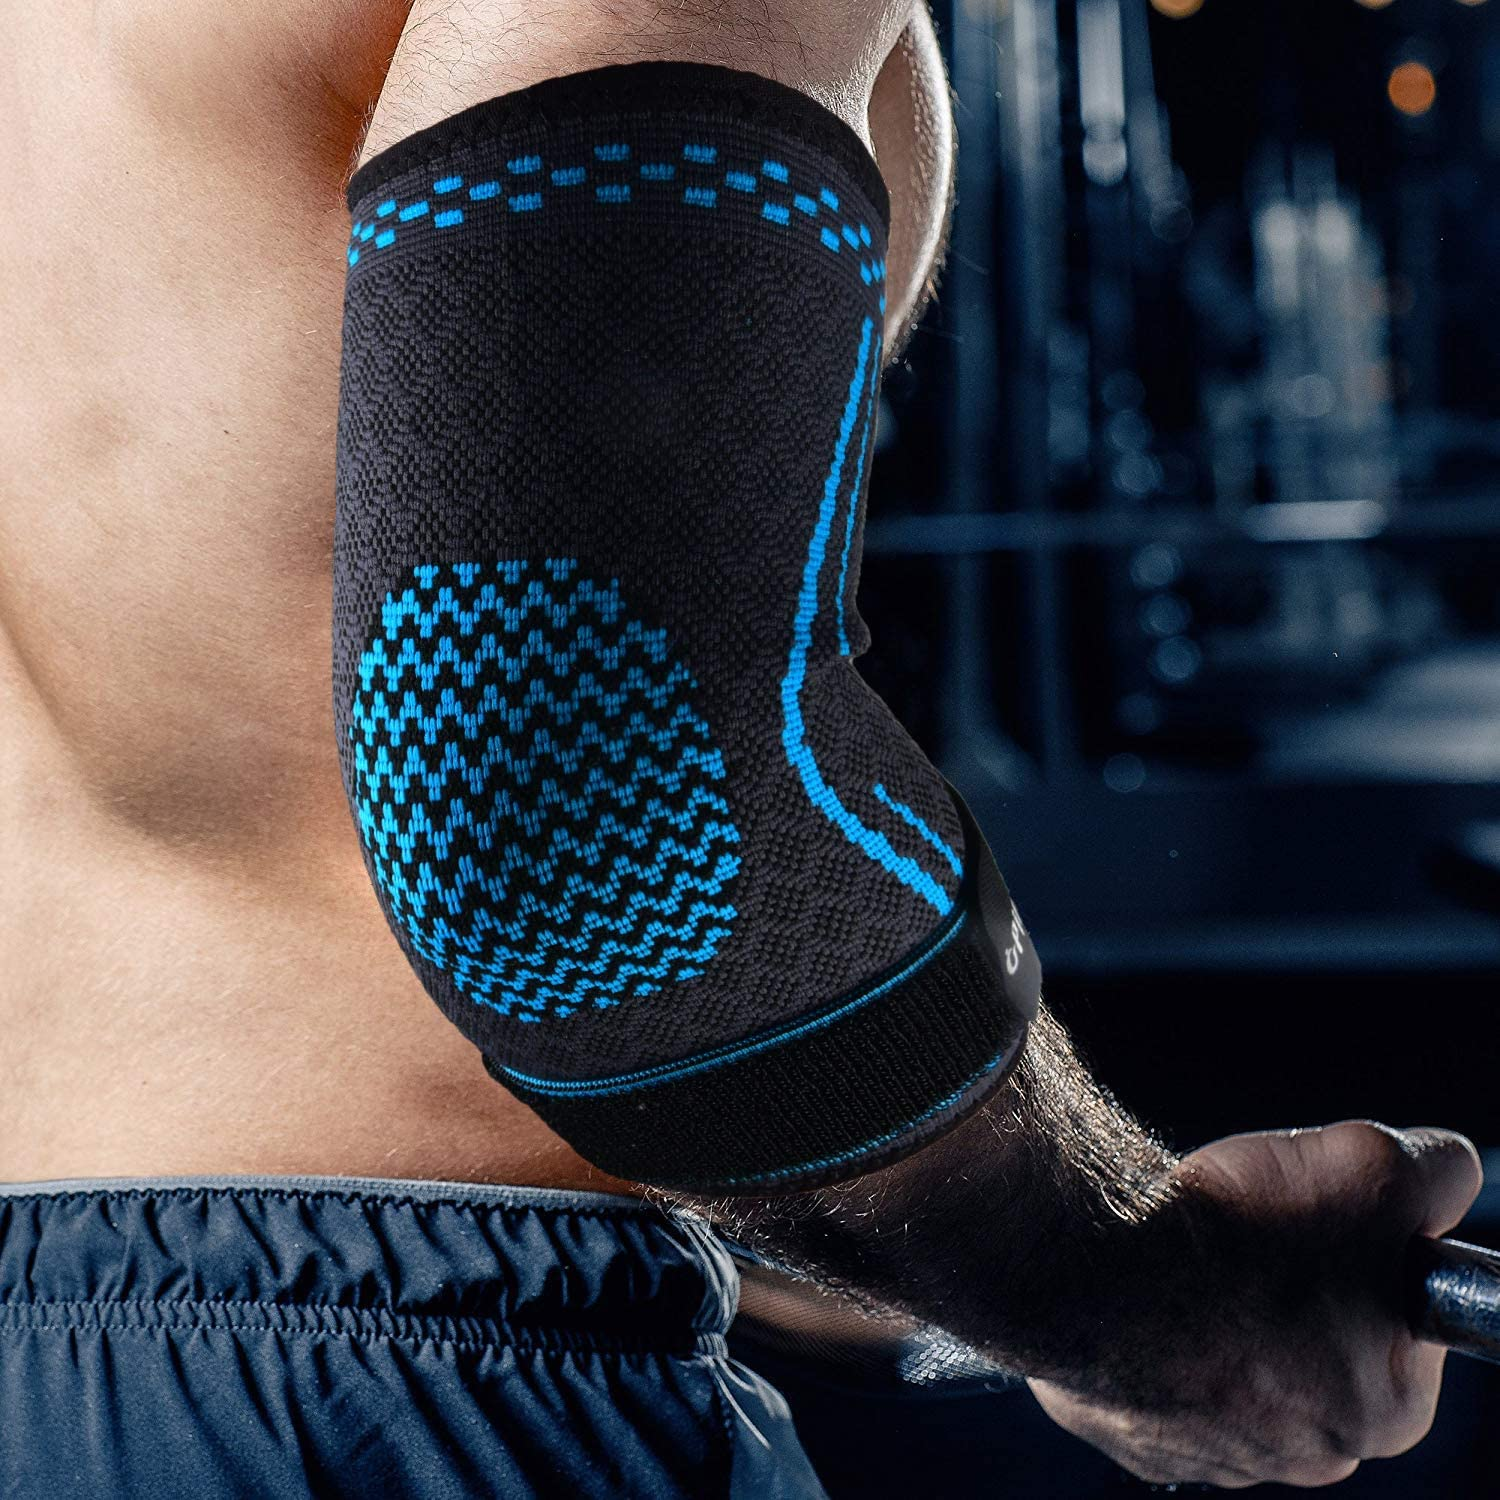 Tennis Elbow Brace and Golfers Elbow Treatment Pair Arthritis Weightlifting Workouts - Arm Elbow Sleeve for Tendonitis Baselay Elbow Compression Wraps Support Training